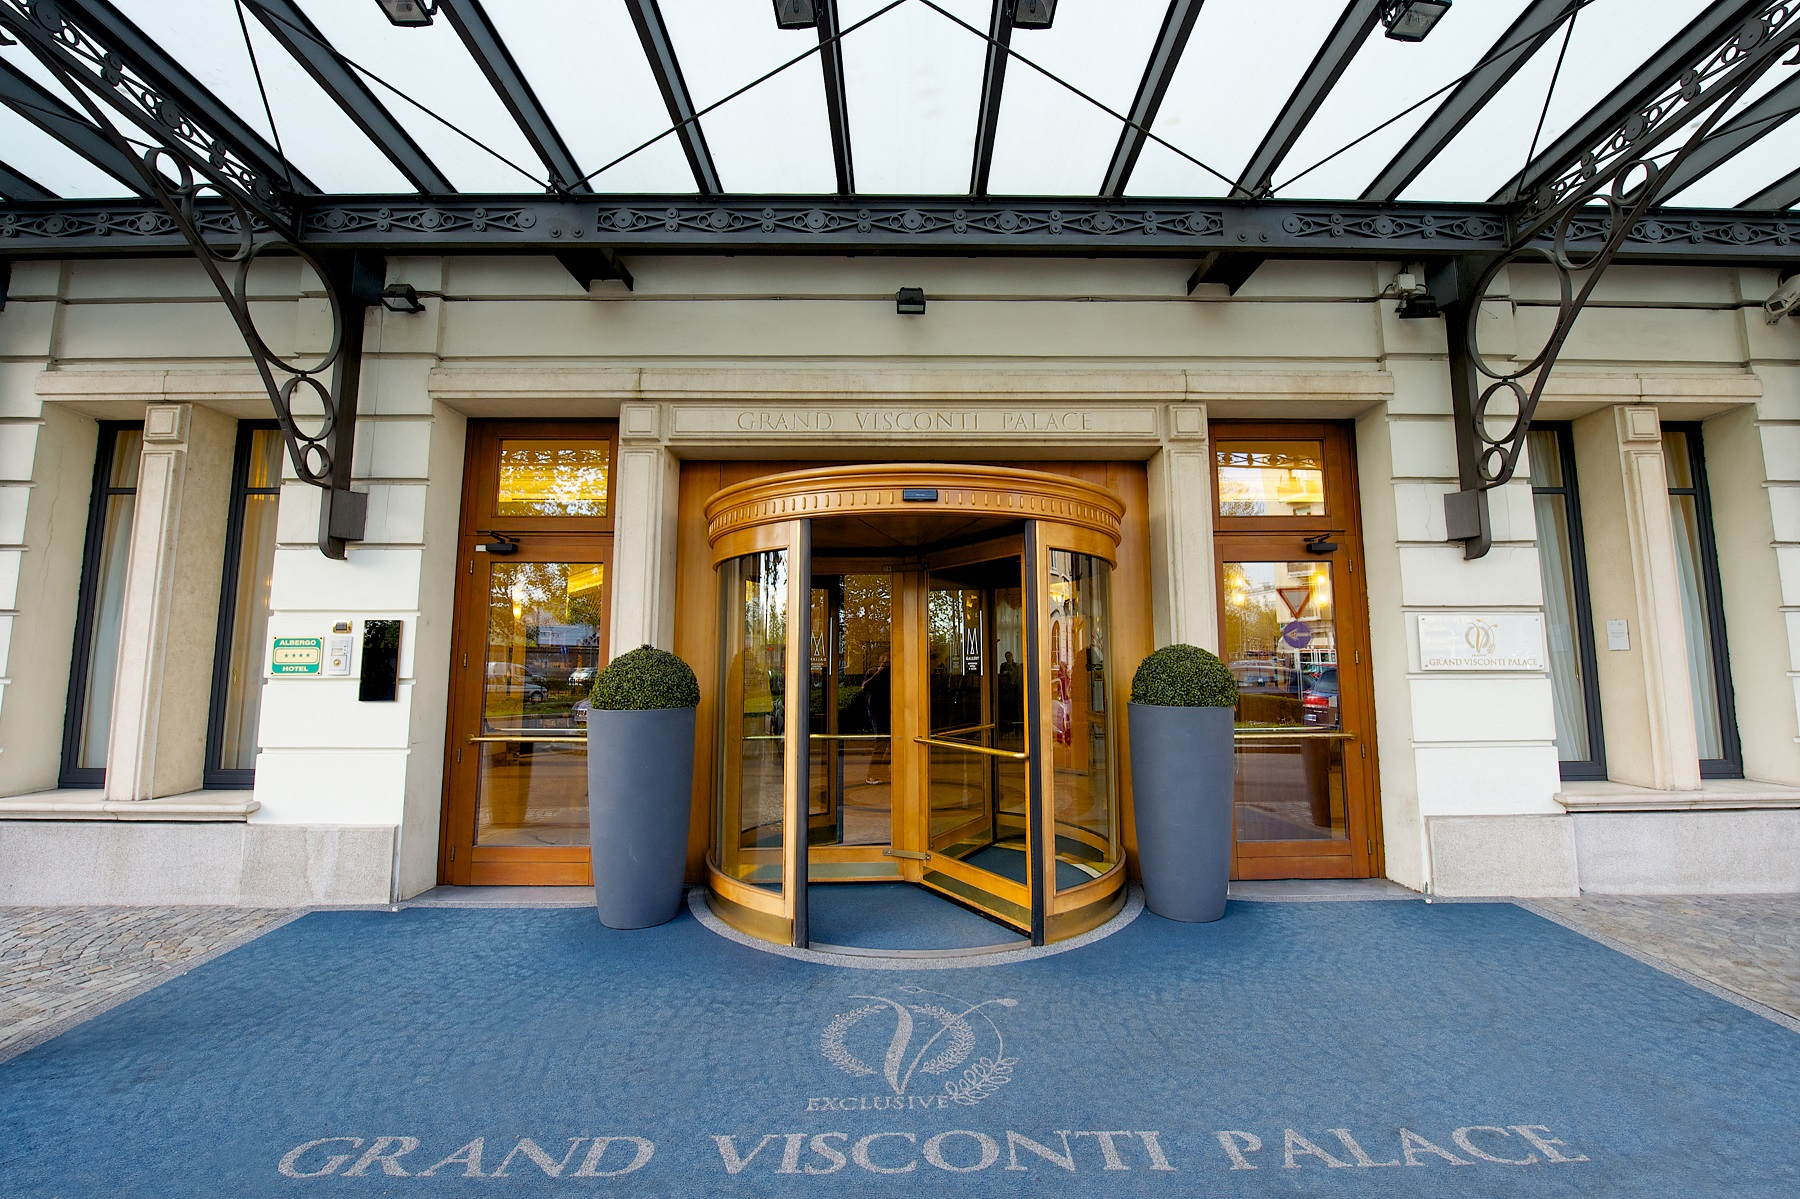 Grand visconti palace hotel milan italy for Visconti palace hotel